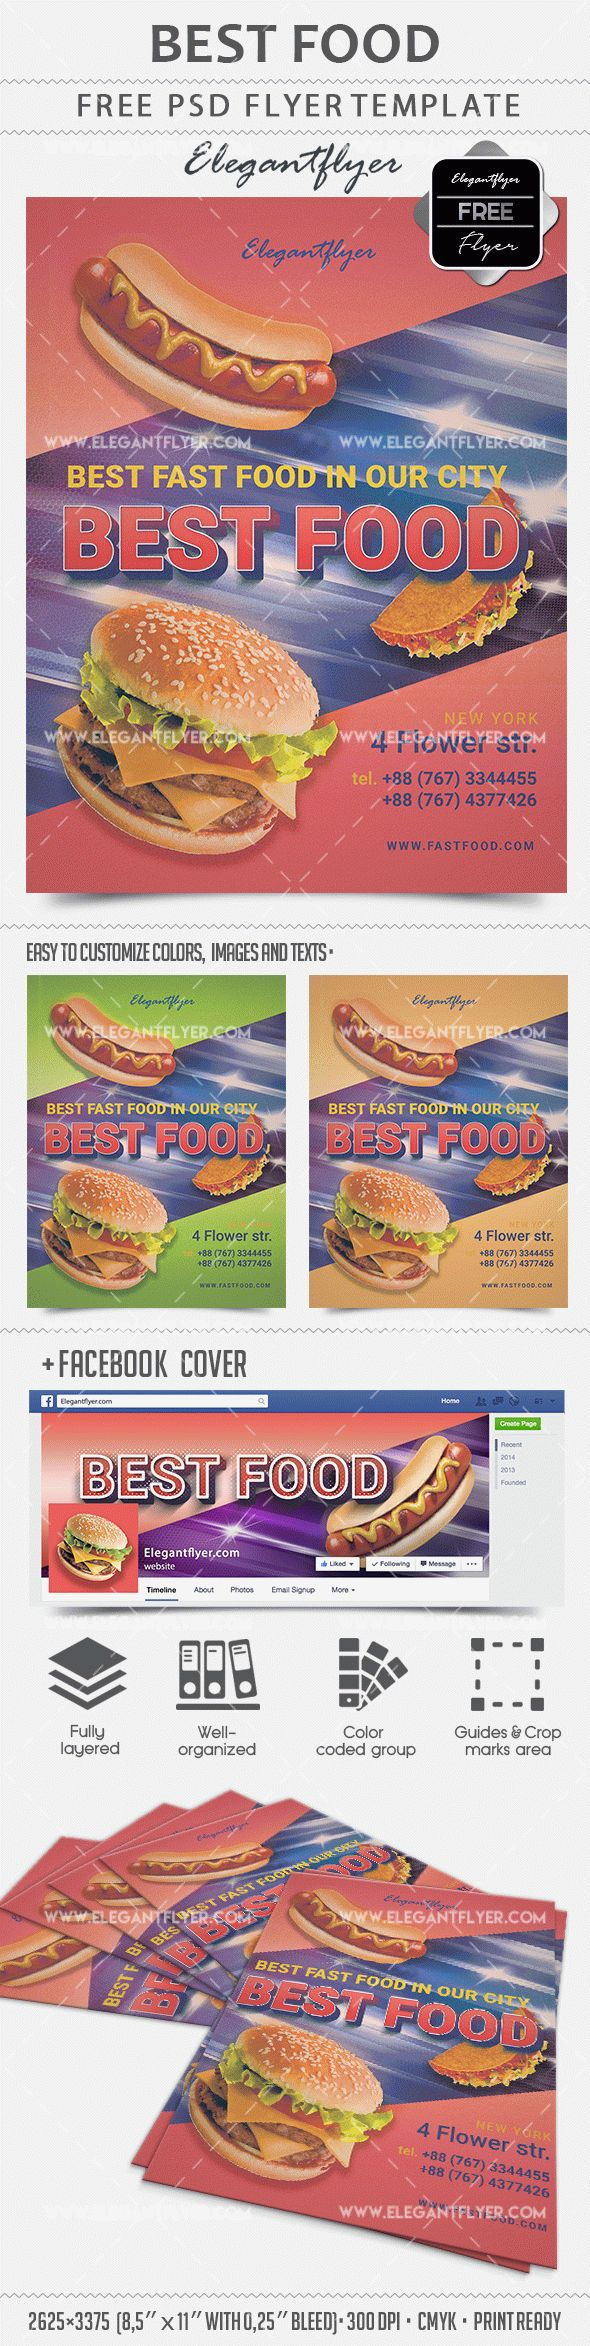 Best Food – Free Flyer PSD Template + Facebook cover